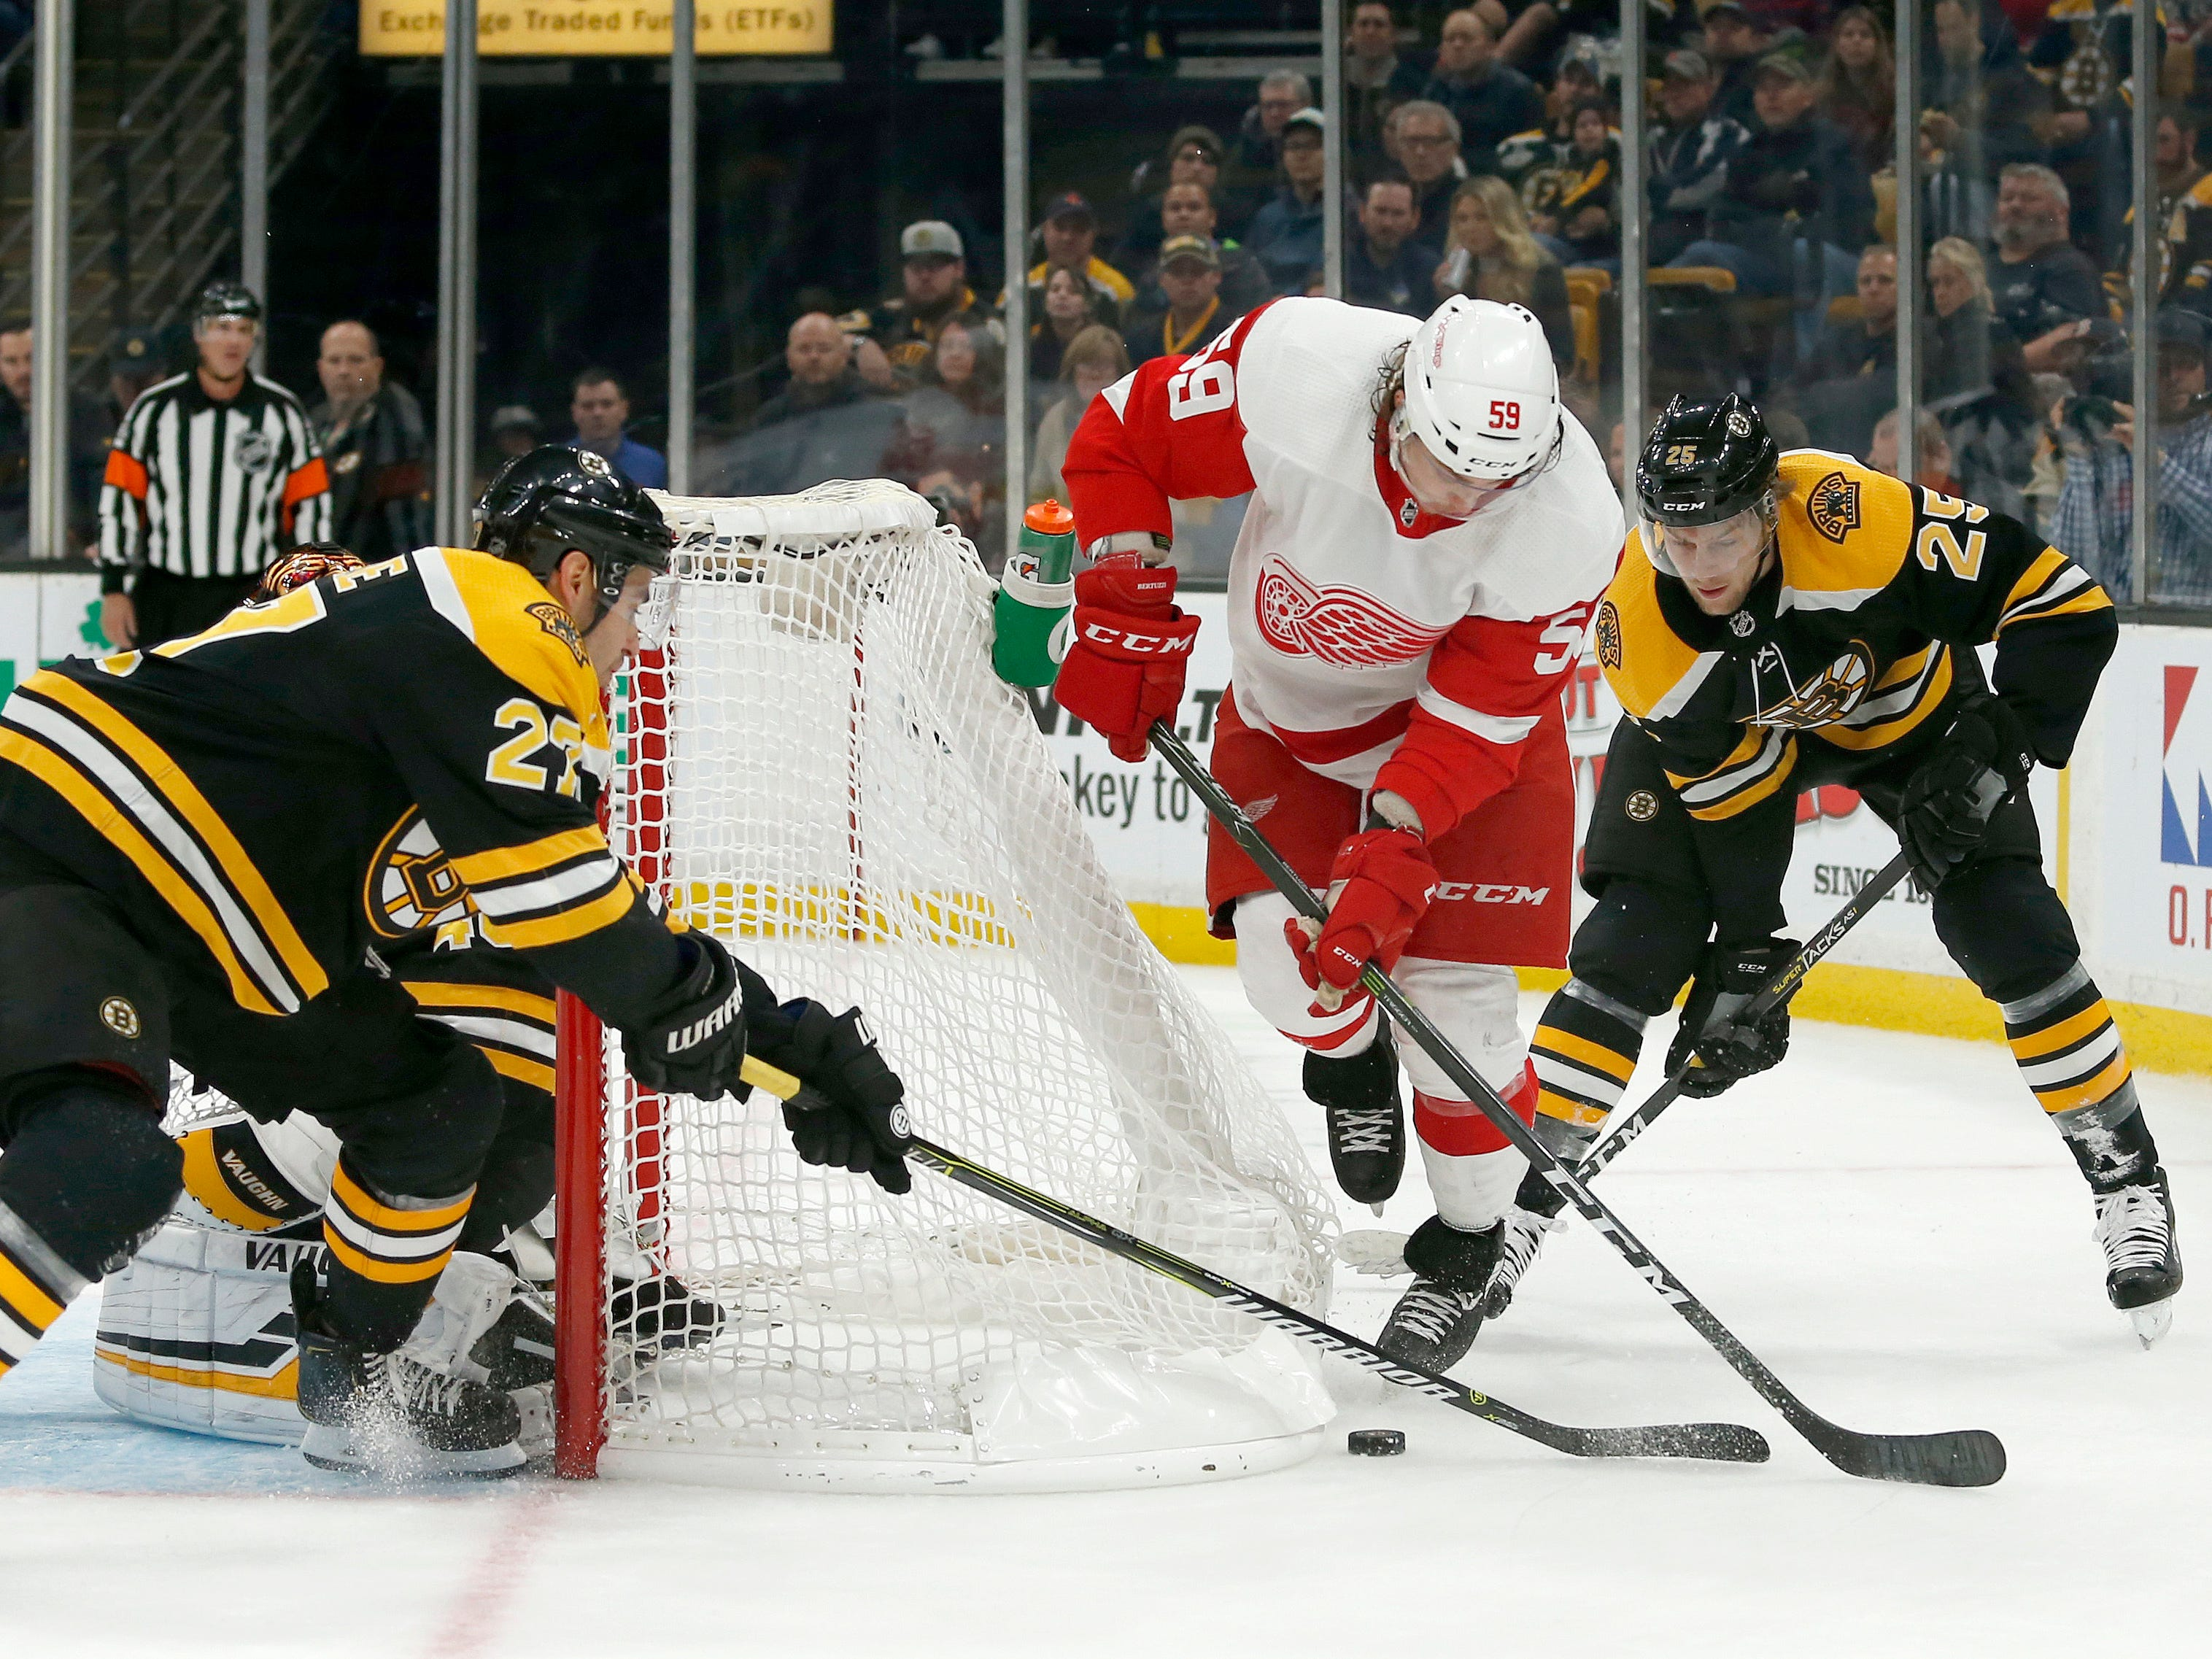 Detroit Red Wings left wing Tyler Bertuzzi (59) tries to move the puck around the net as Boston Bruins players John Moore (27) and Brandon Carlo (25) defend during the first period Saturday, Oct. 13, 2018, in Boston.